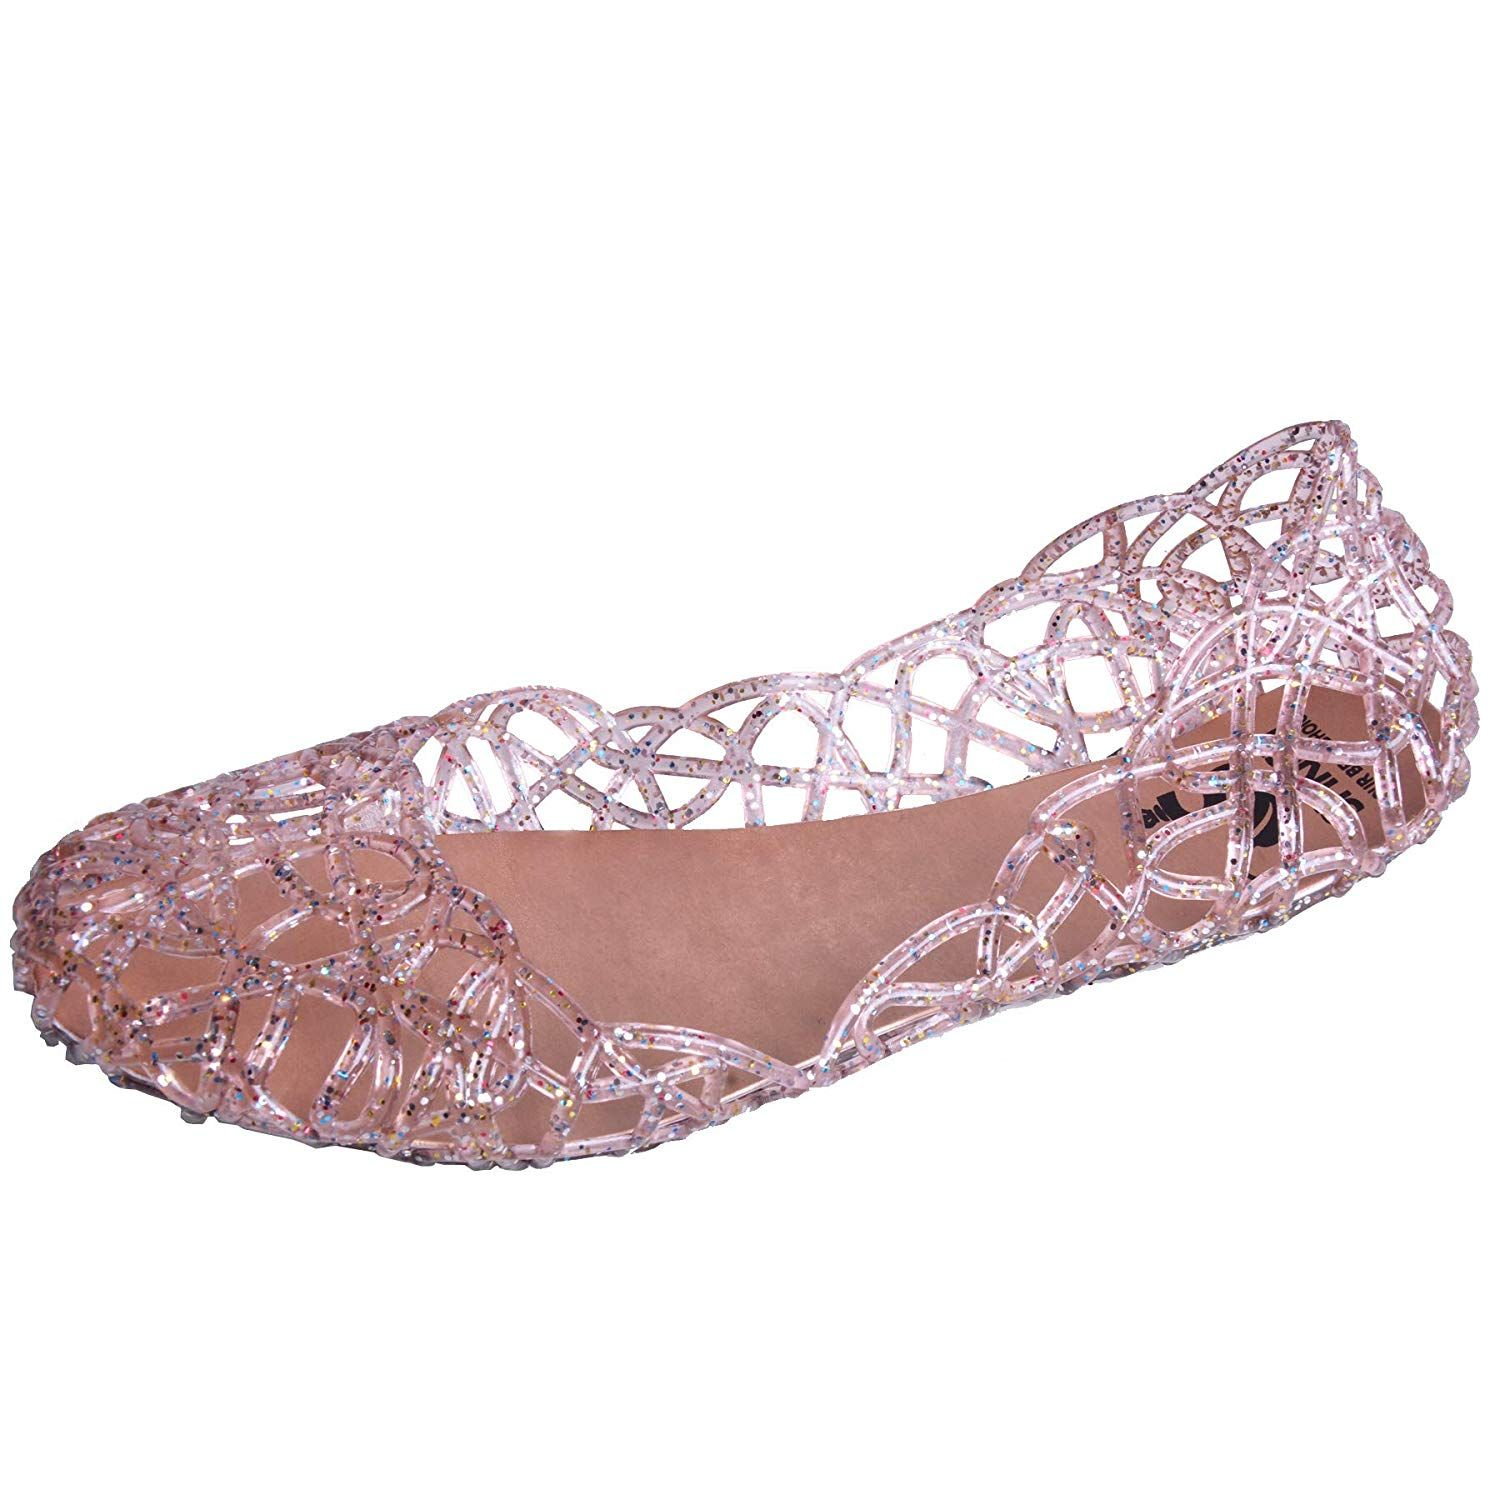 1301419fda0d Hee grand Womens Summer Jelly Shoes Ballet Flats Slip On Hollow Out Loafers Bird  Nest Mesh Sandals     Very nice of you to have dropped by to view our ...